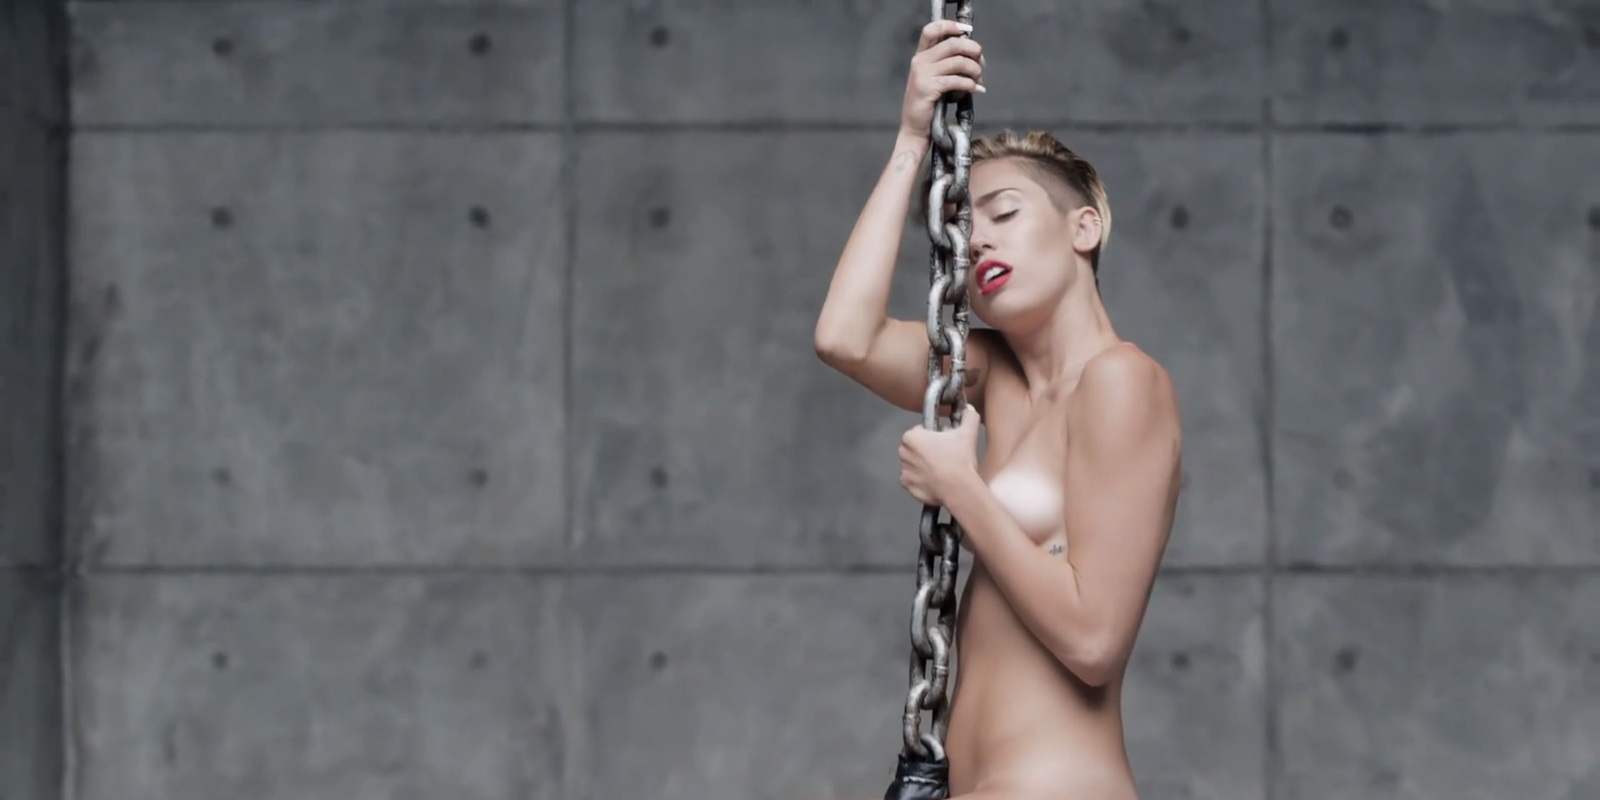 Miley cyrus nude wrecking ball